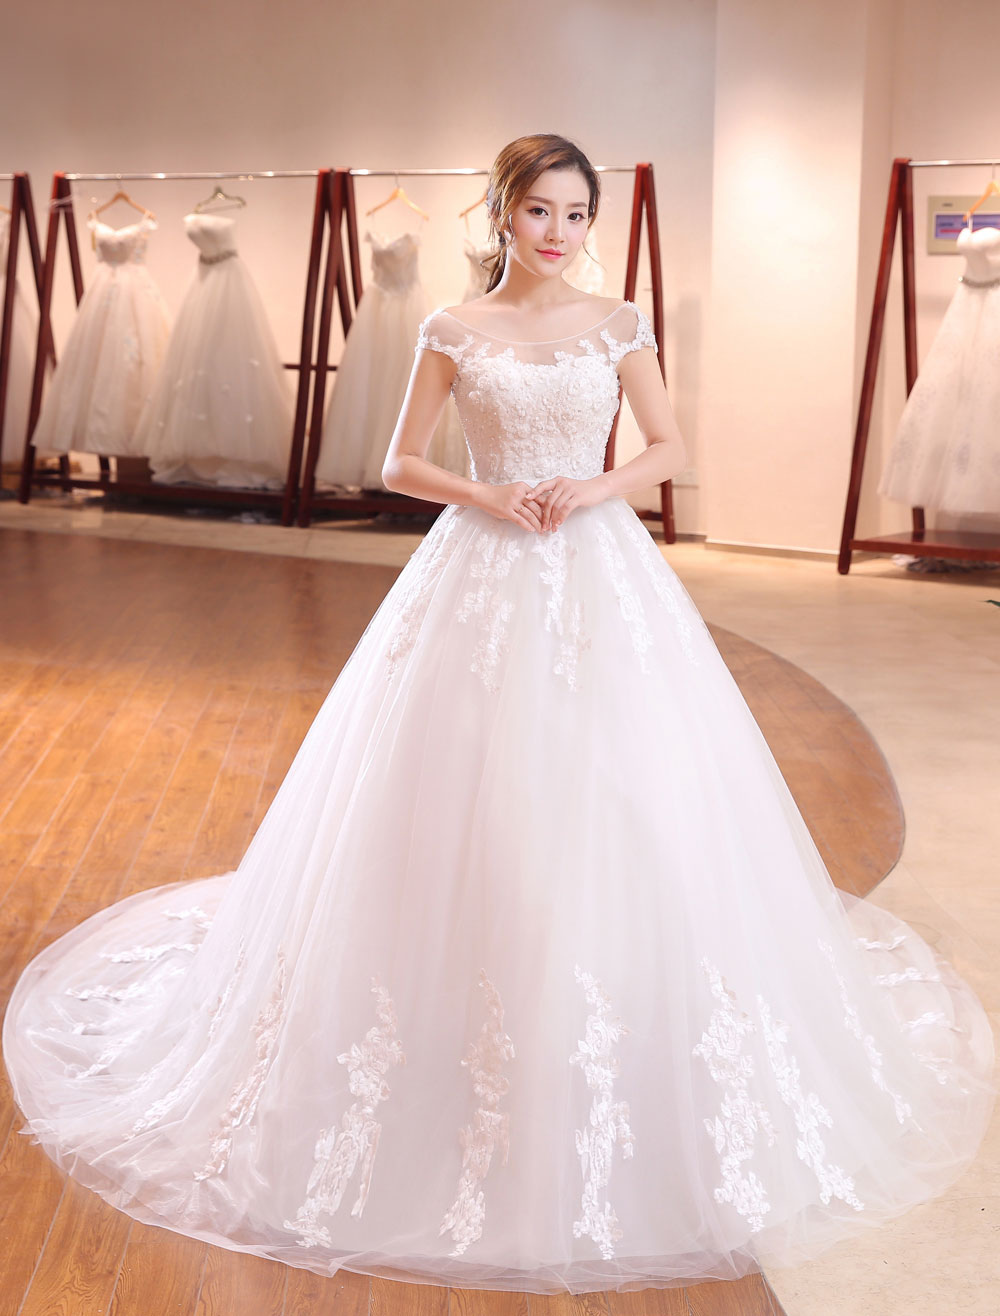 Buy Princess Wedding Dresses Ivory Lace Applique Scoop Neck Illusion Bow Sash Bridal Gown With Long Train for $140.79 in Milanoo store